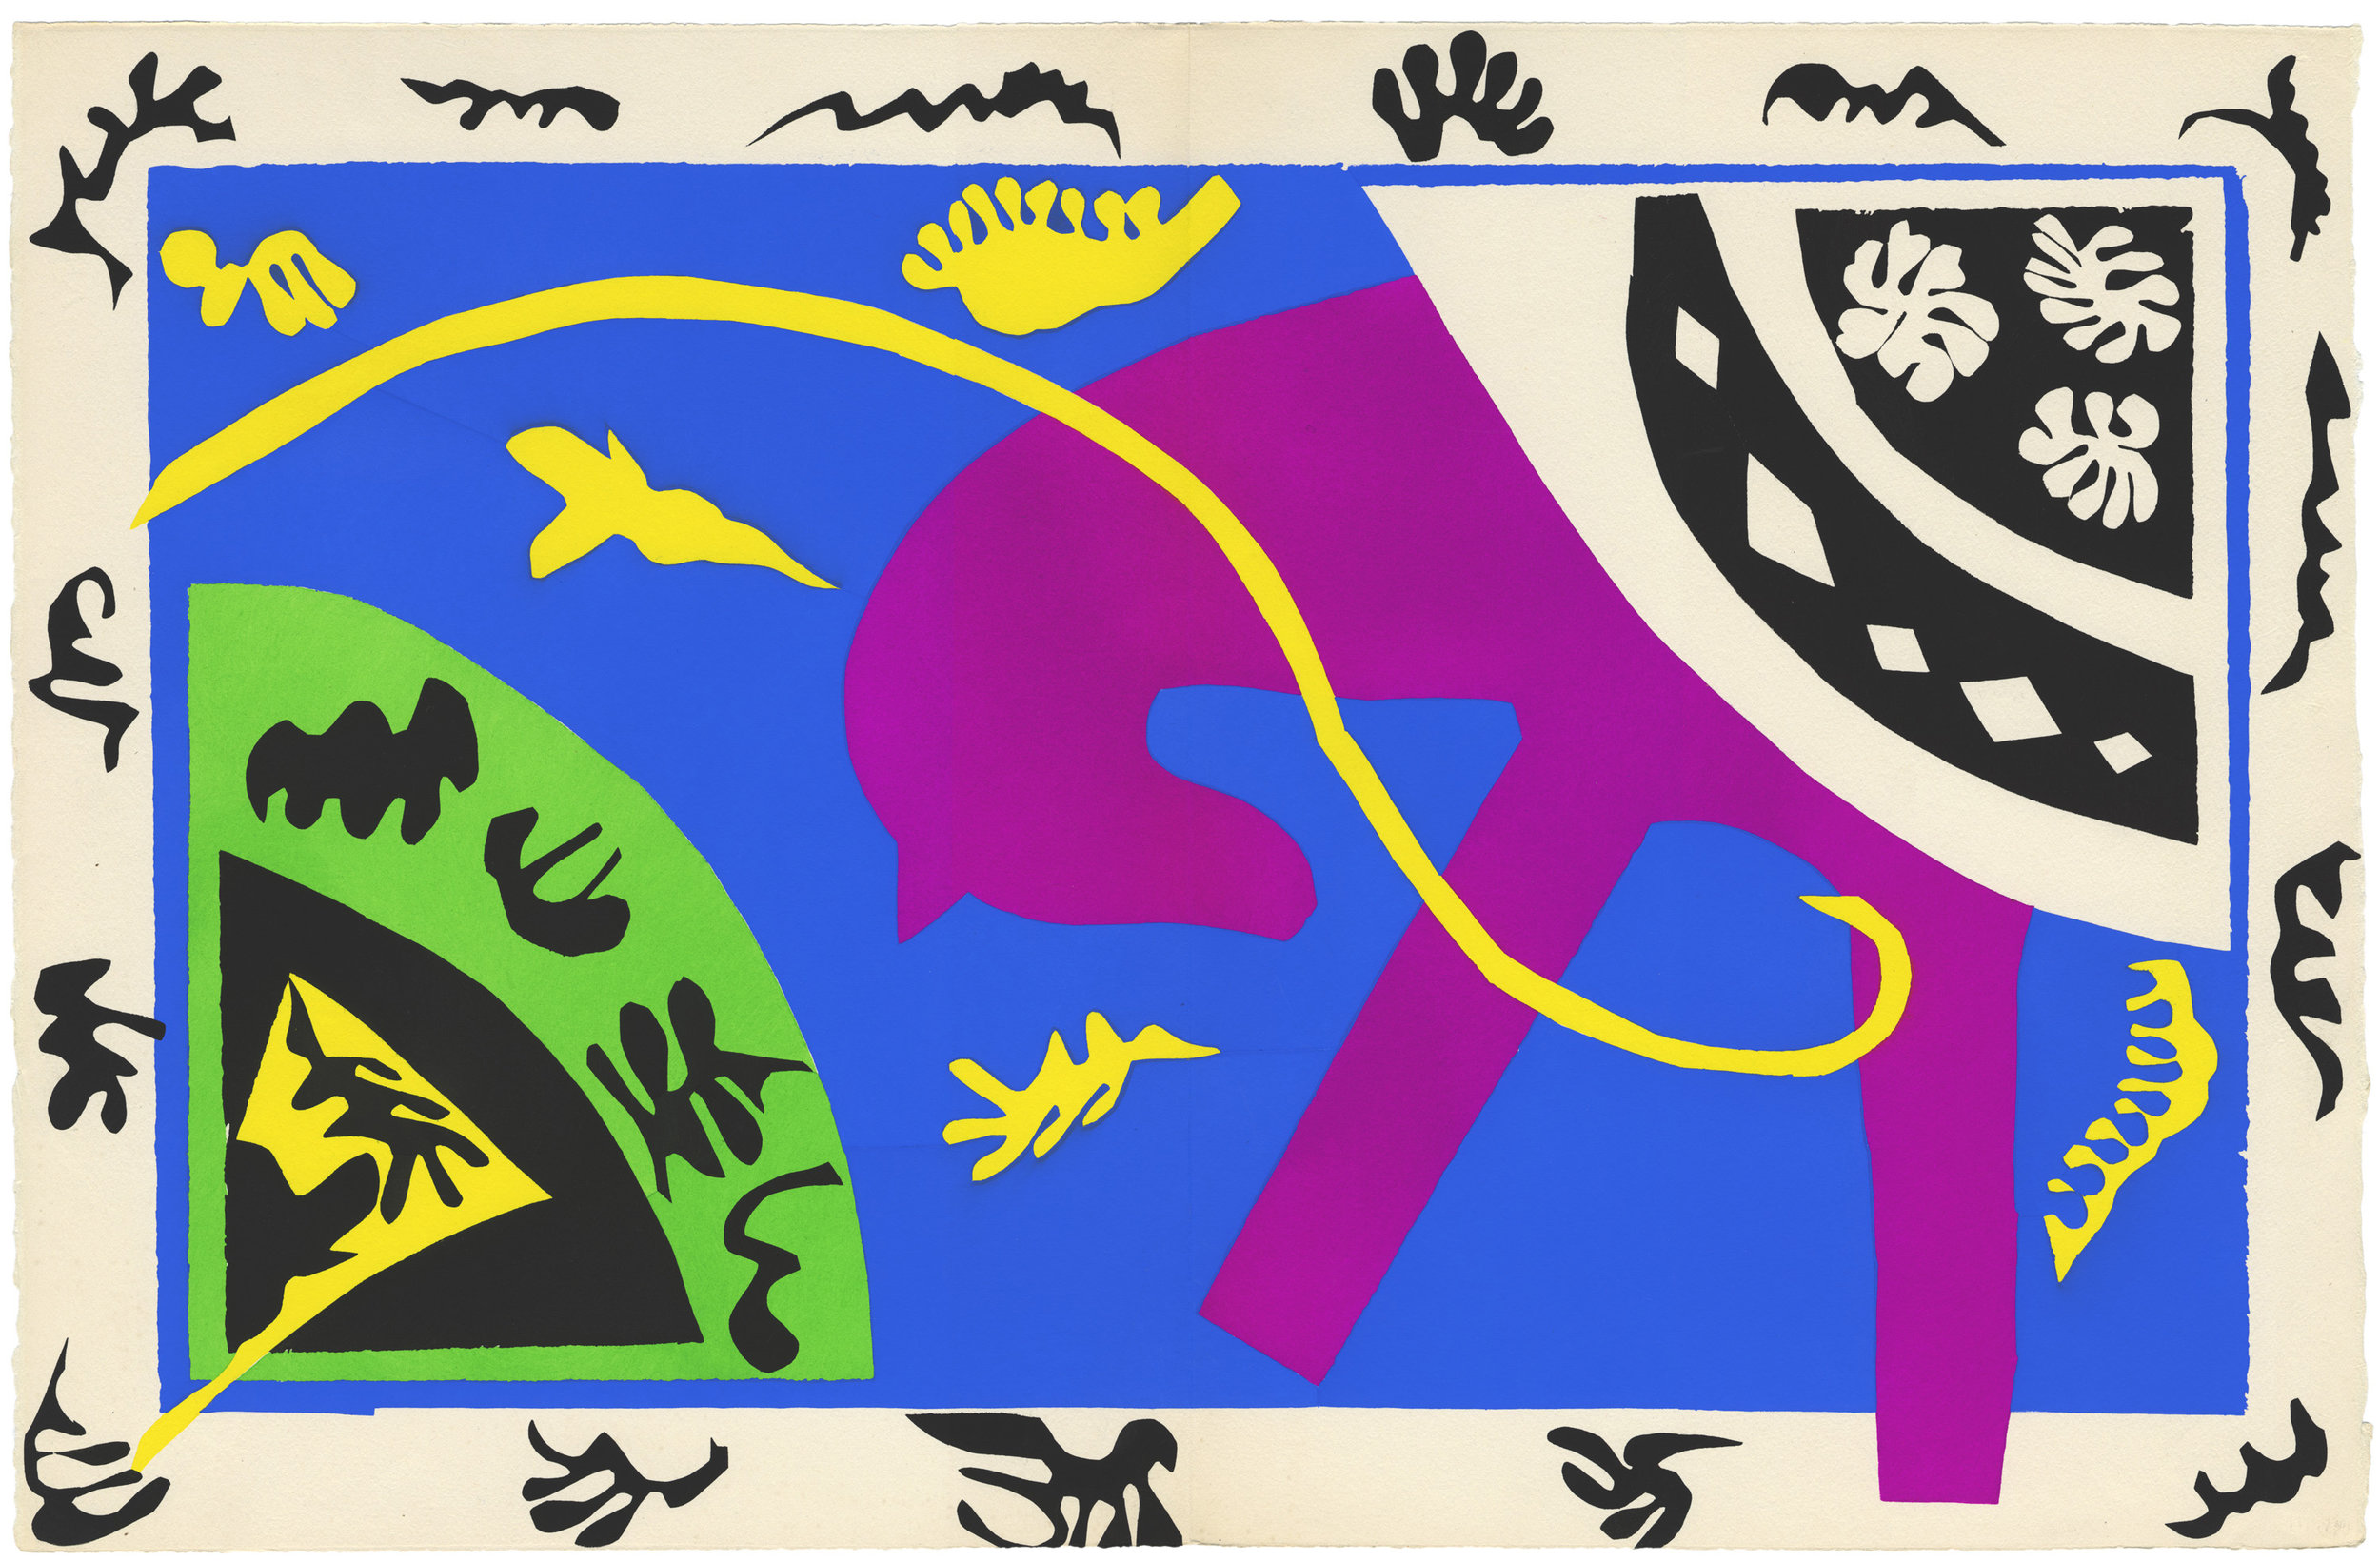 Music for Matisse